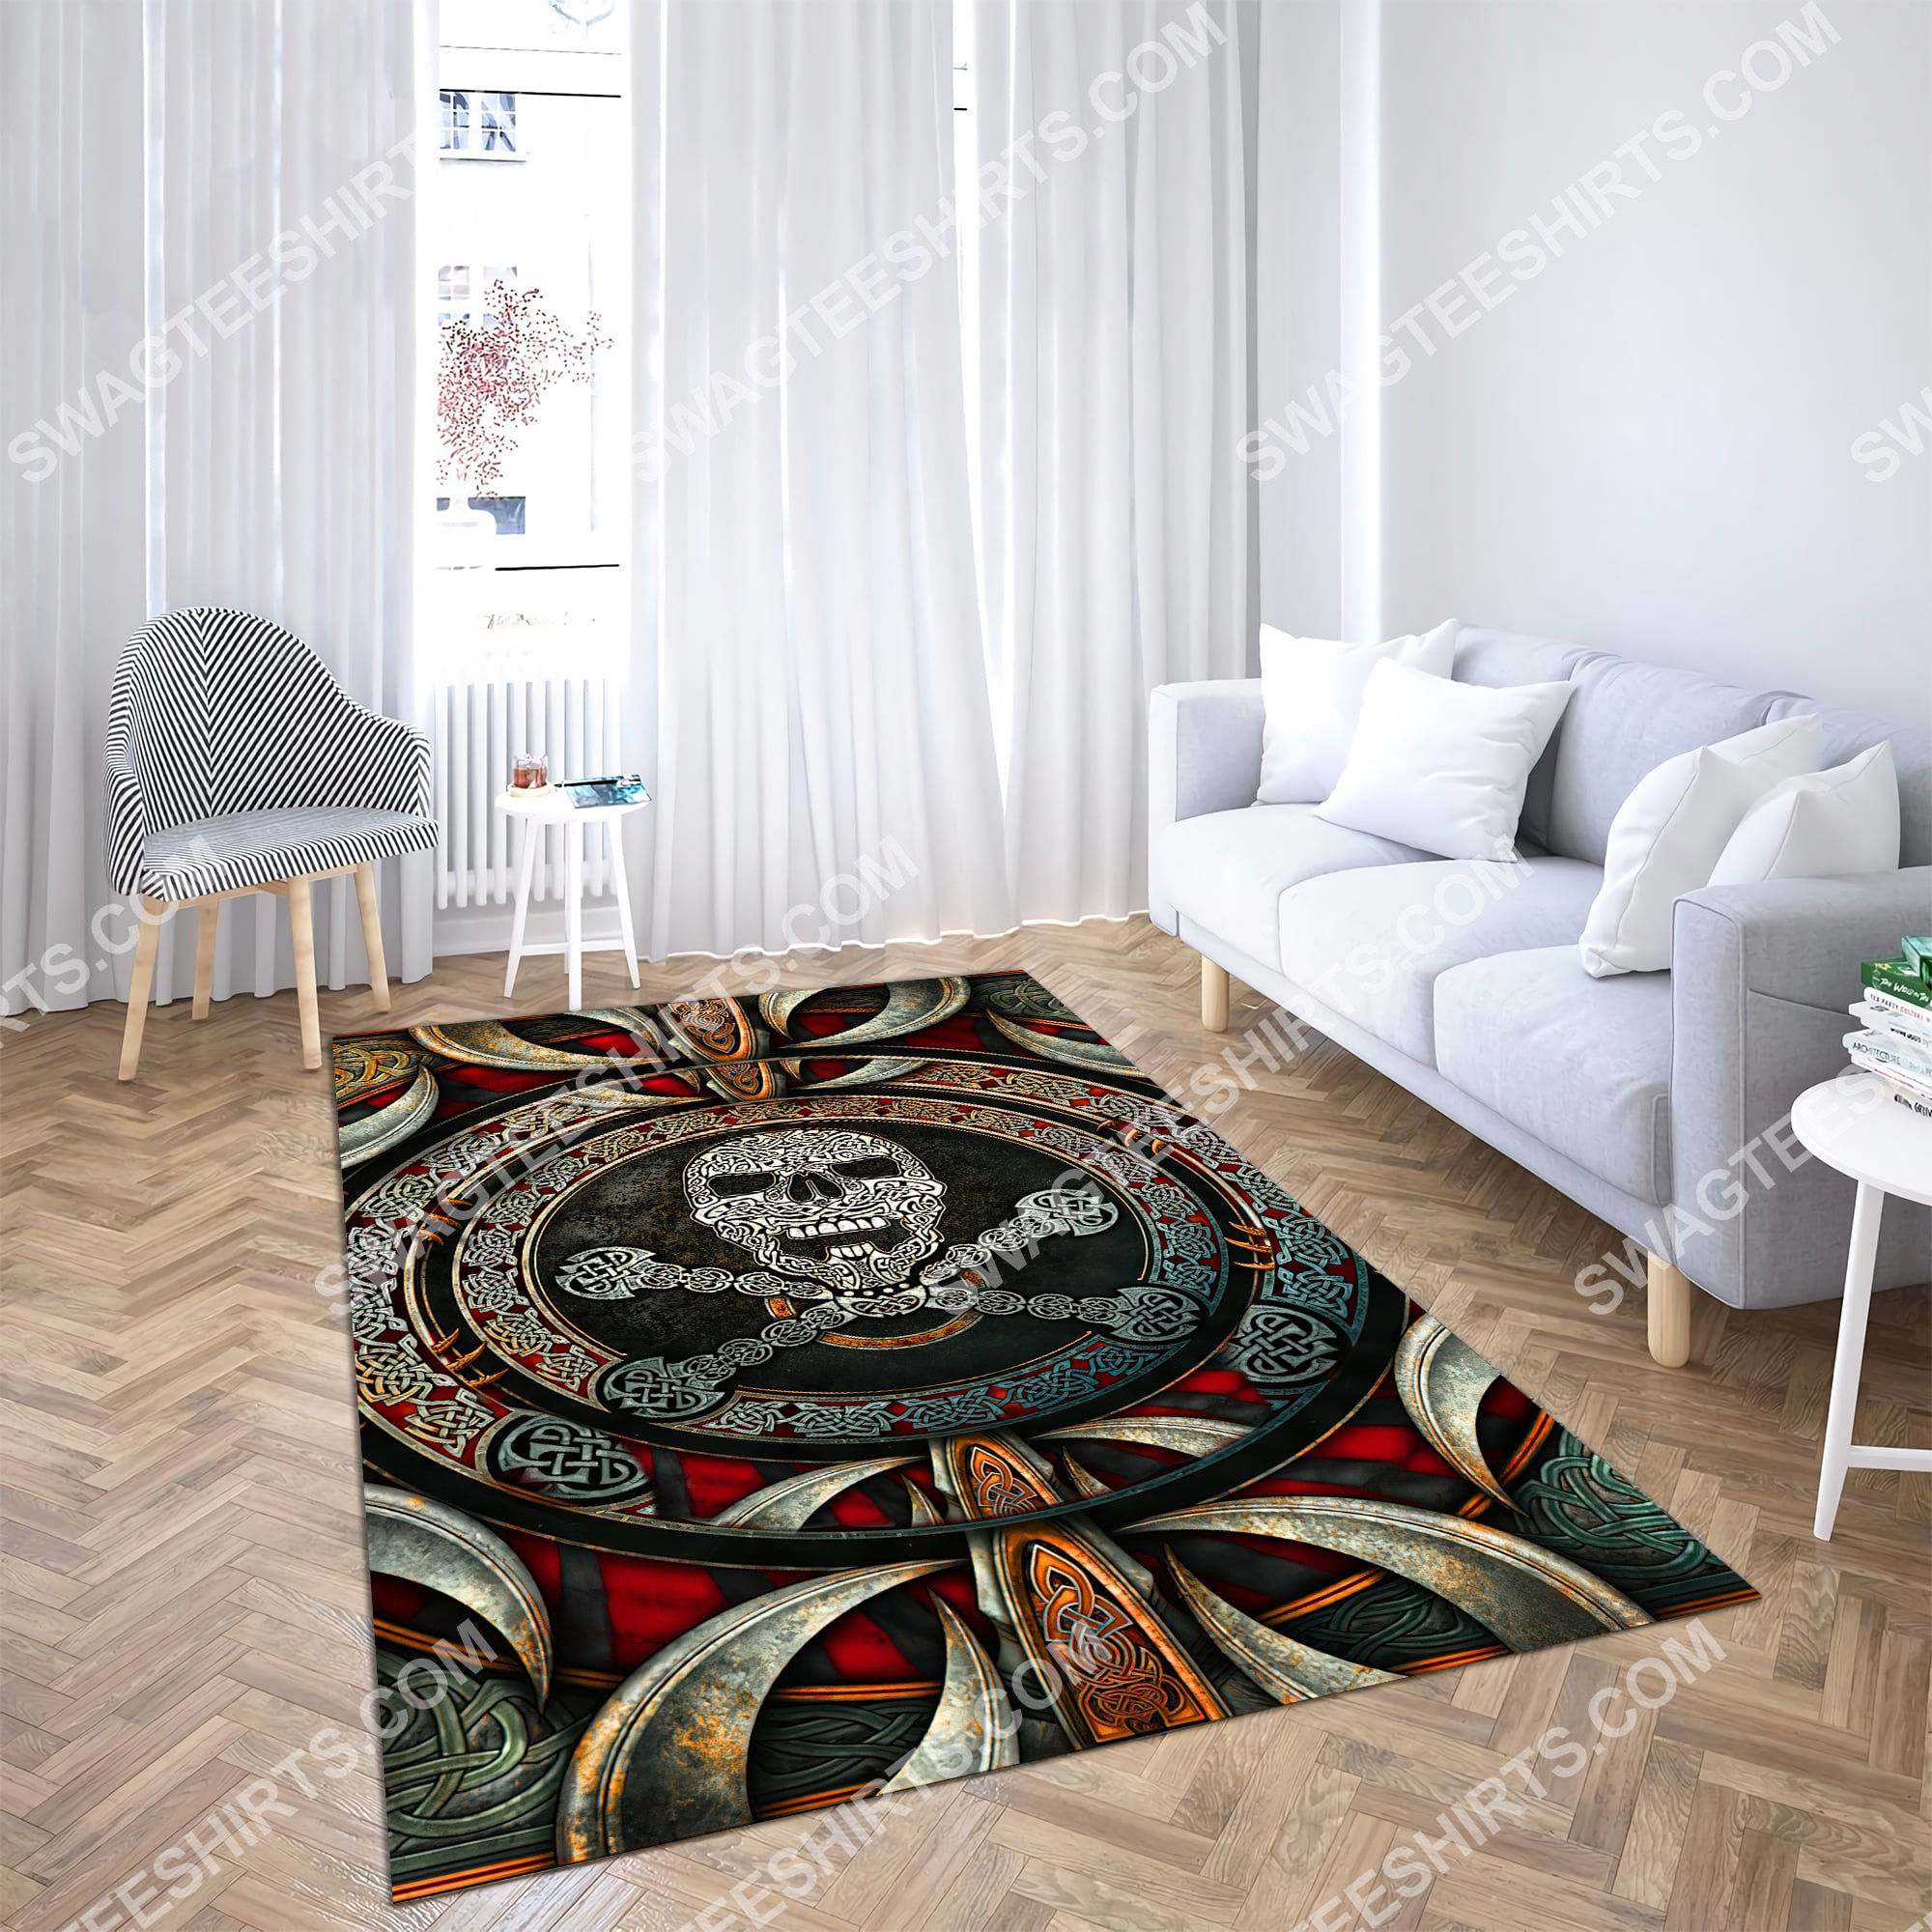 the viking skull all over printed rug 4(1)